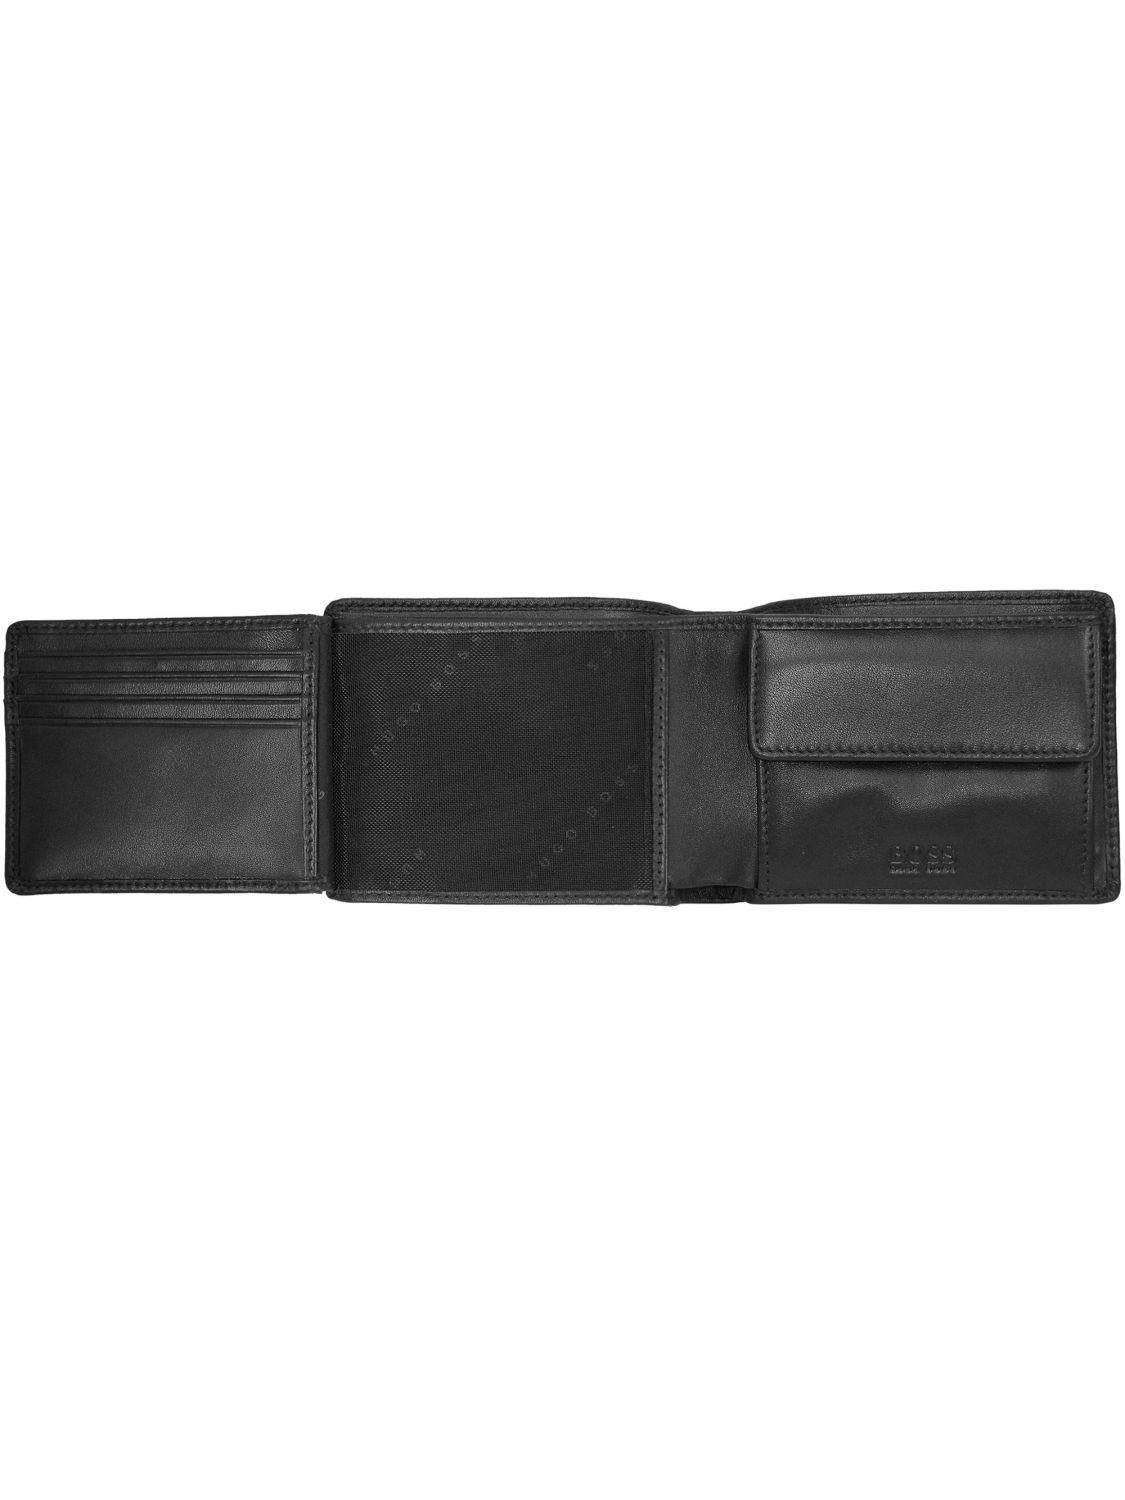 BOSS 50250280 Arezzo Gents Wallet Black • uhrcenter 36b43412cc